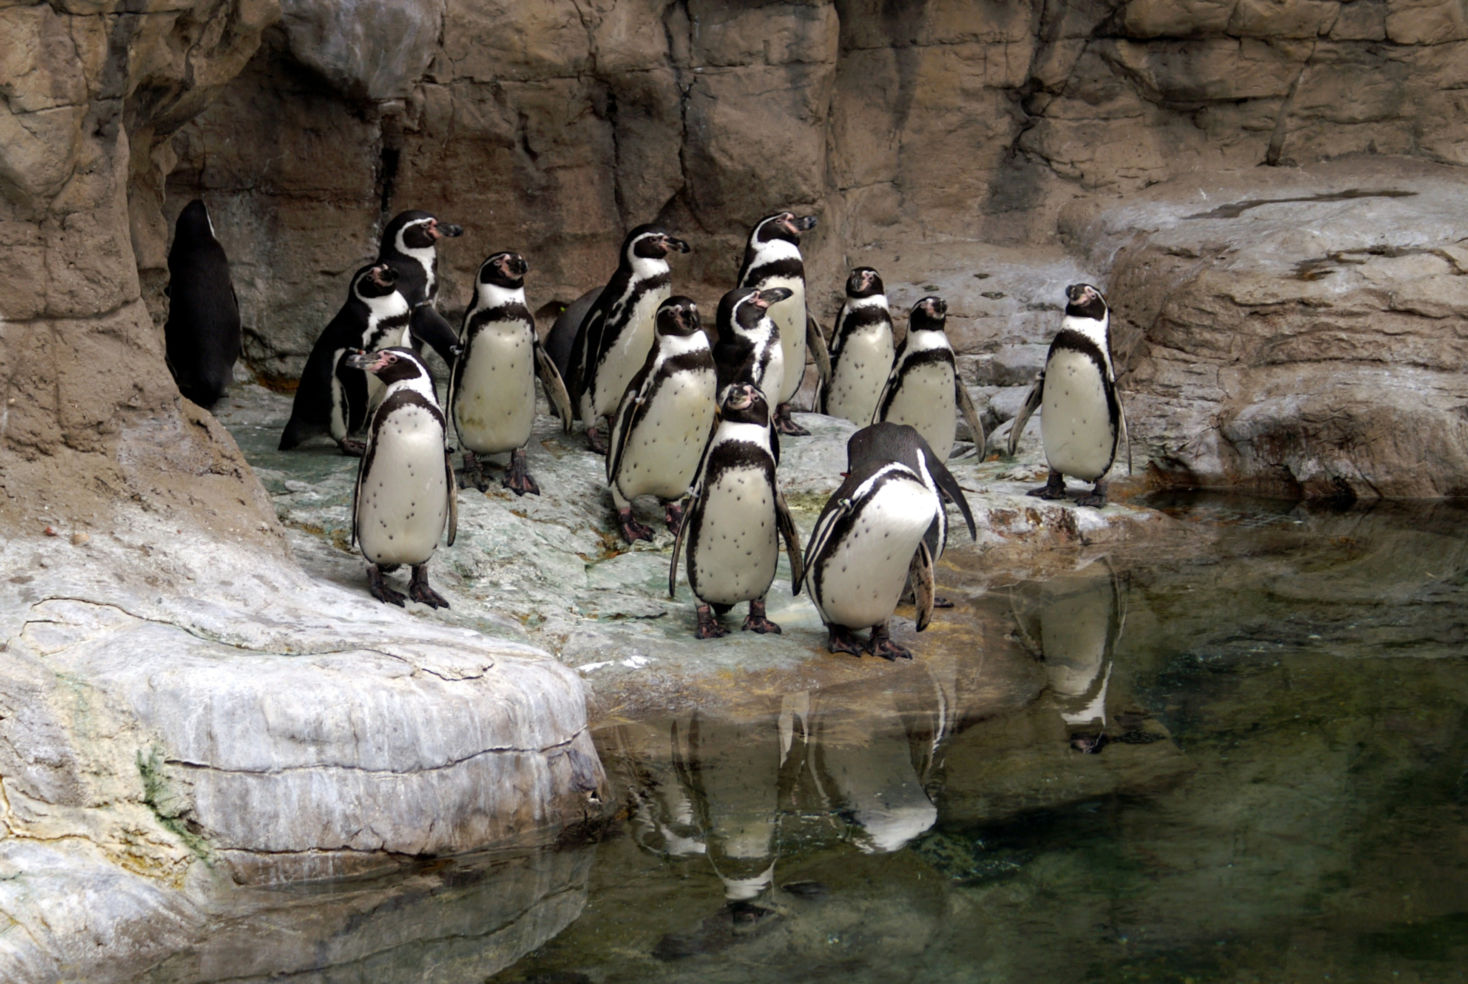 Group of Pengiuns at the St. Louis Zoo